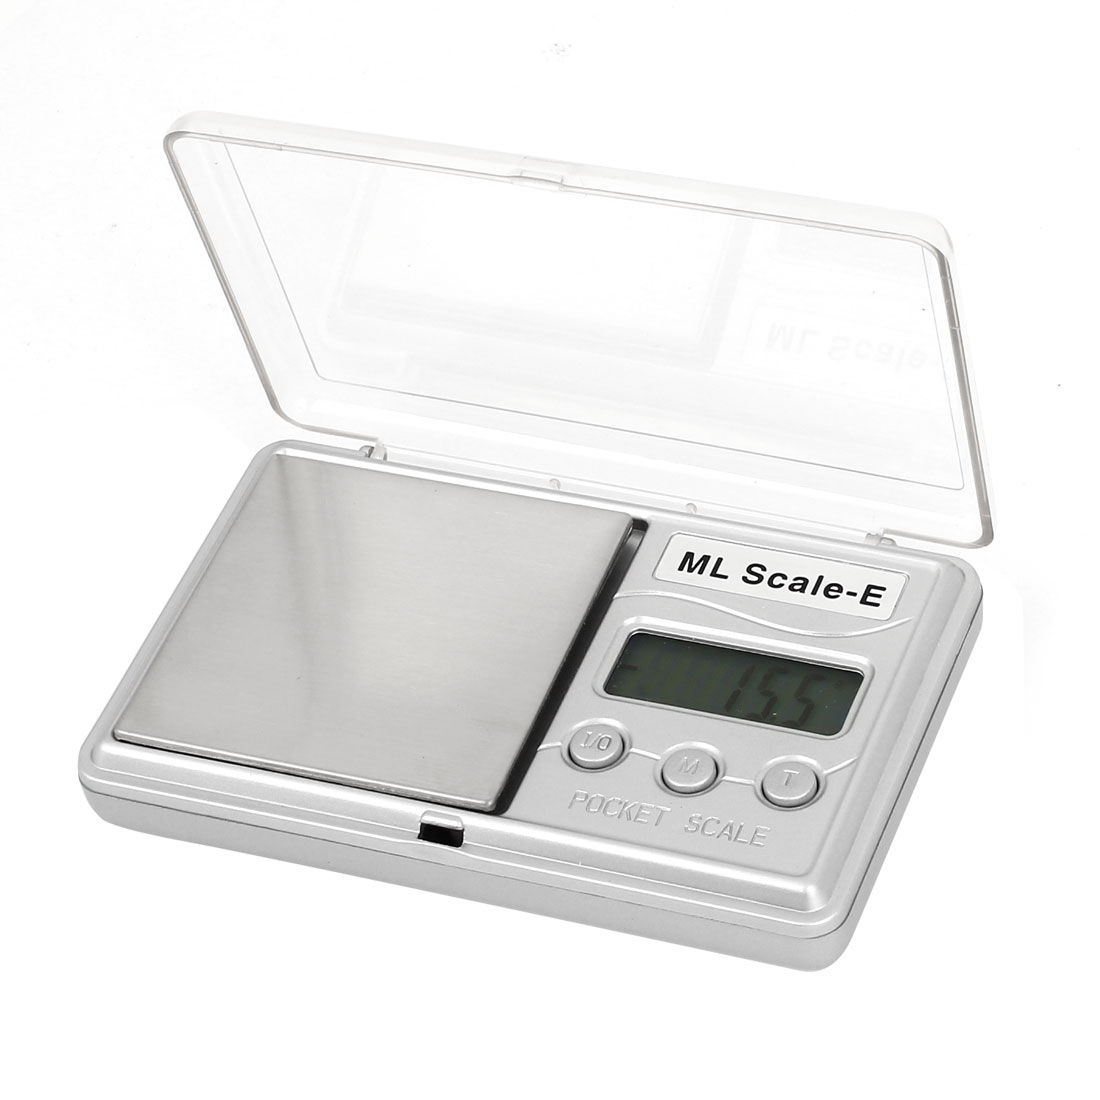 Clear Cover 0.1g x 500g Jewelry Weight Balance Digital Pocket Scale Silver Tone